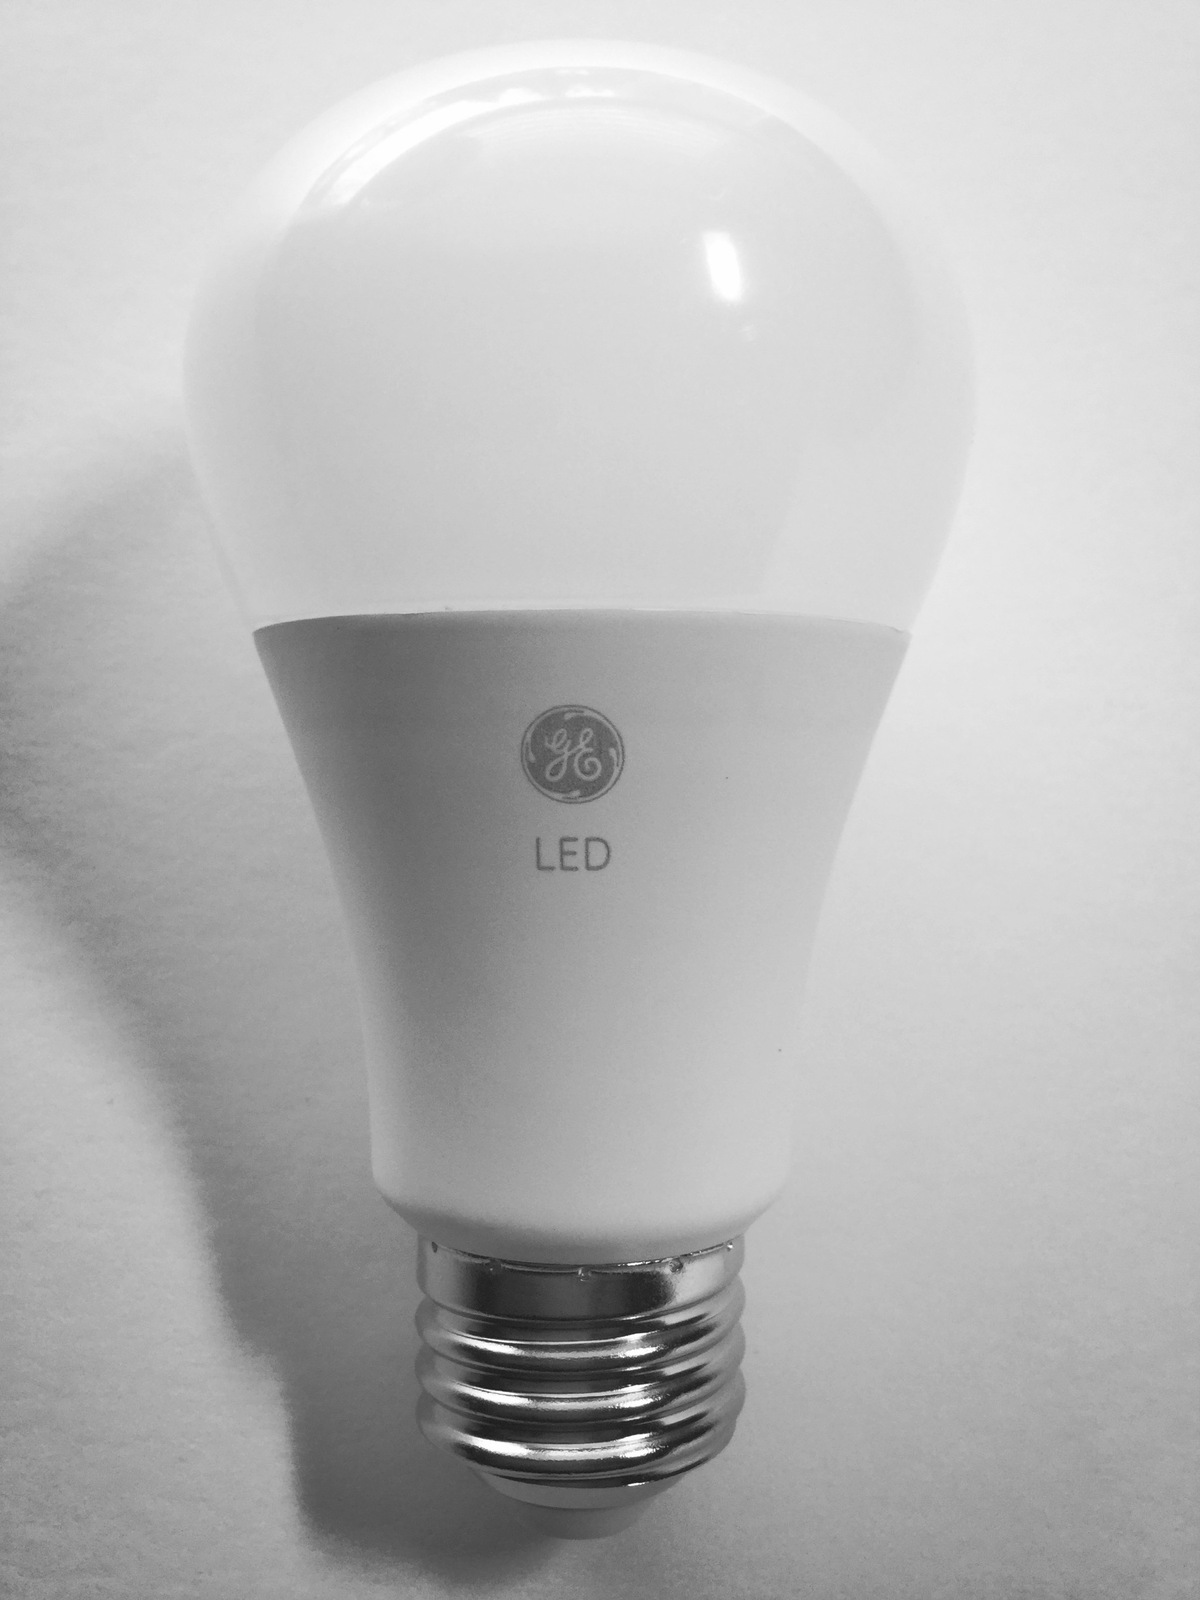 Daylight Led Bulbs: 8 GE LED Daylight 60W Equivalent Dimmable A19 Light Bulb